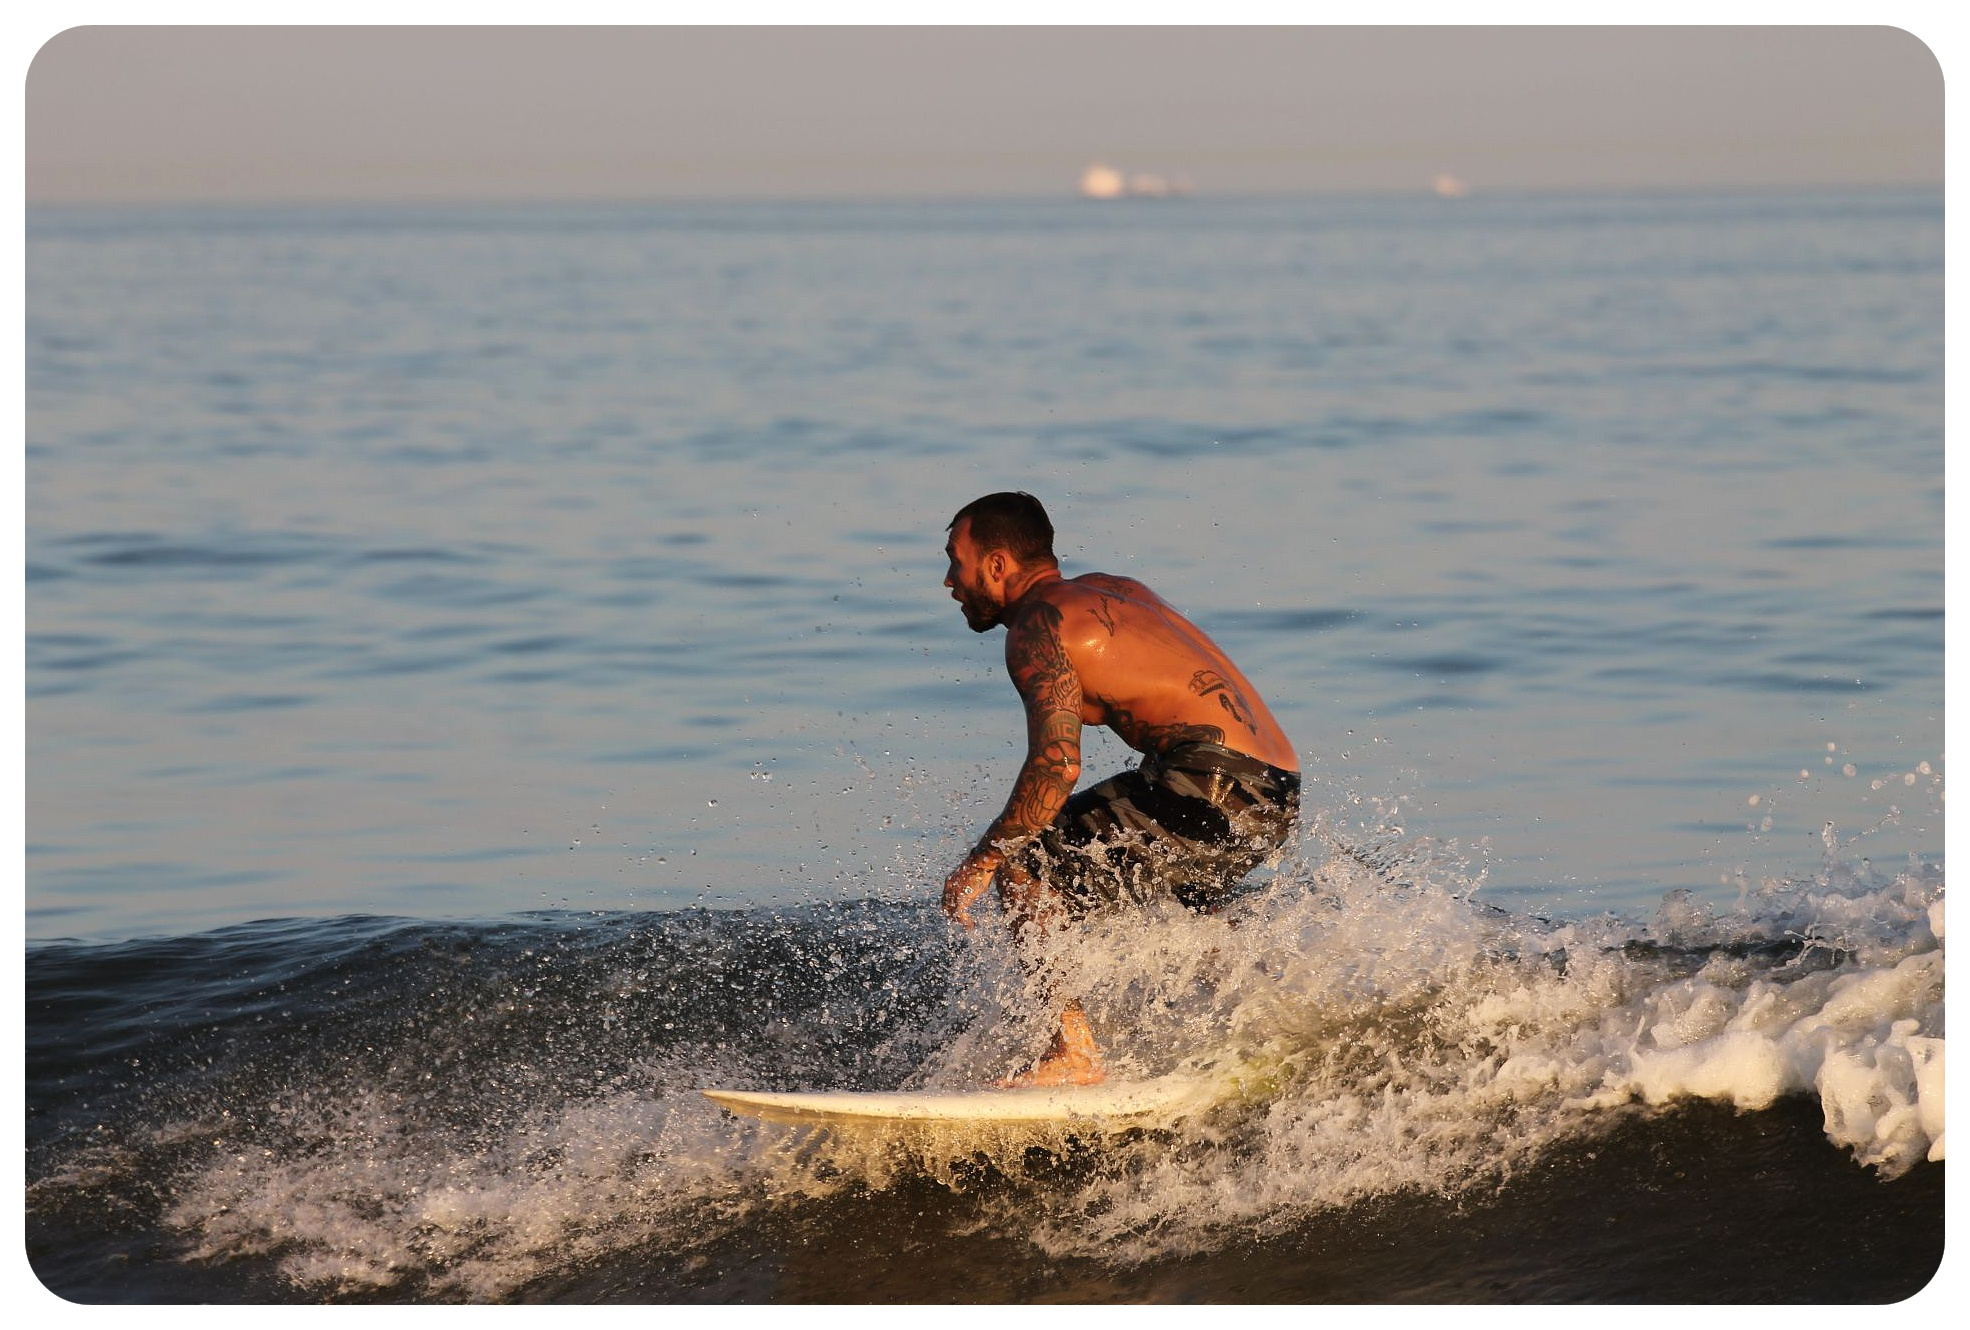 rockaways surfer